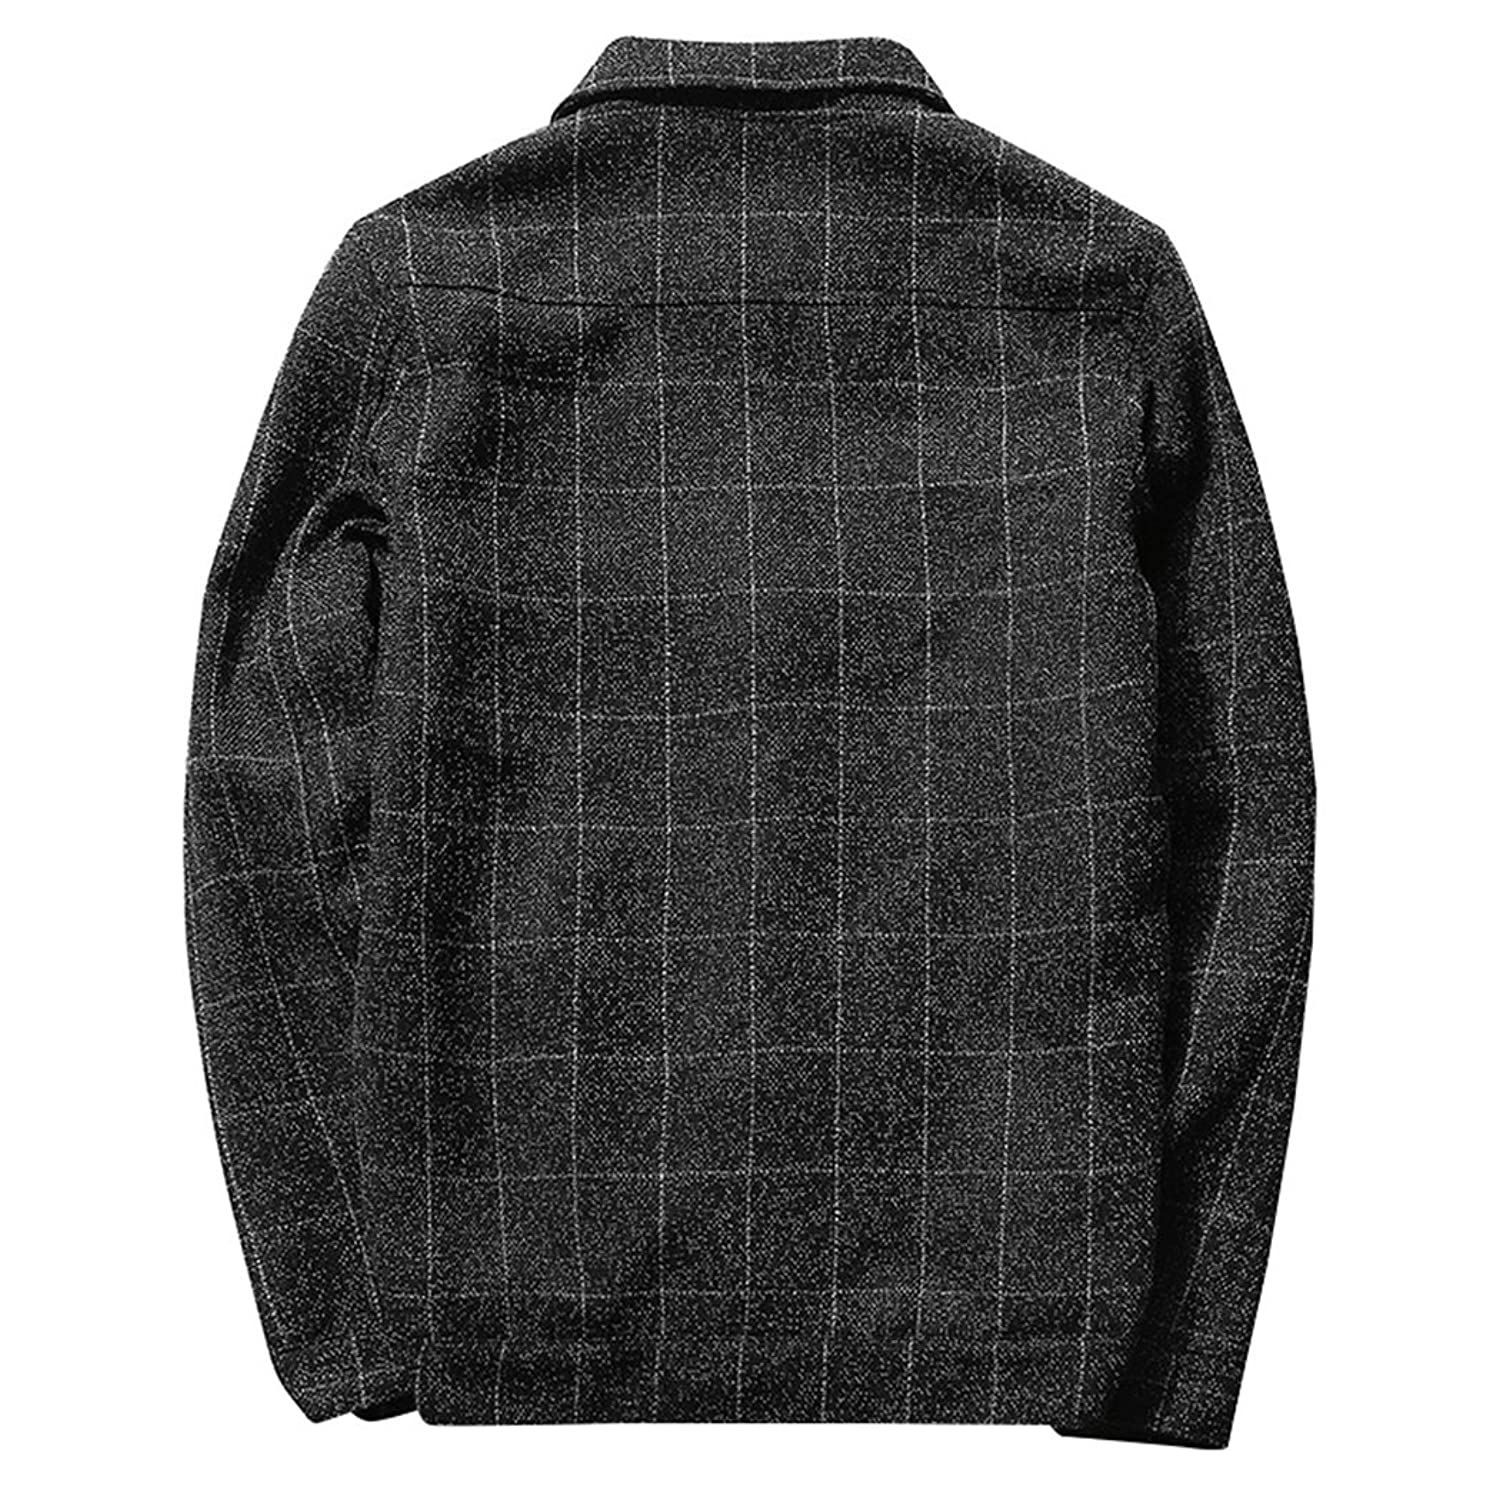 WALK-LEADER Mens Autumn Outdoor Casual Working Style Checked Jacket